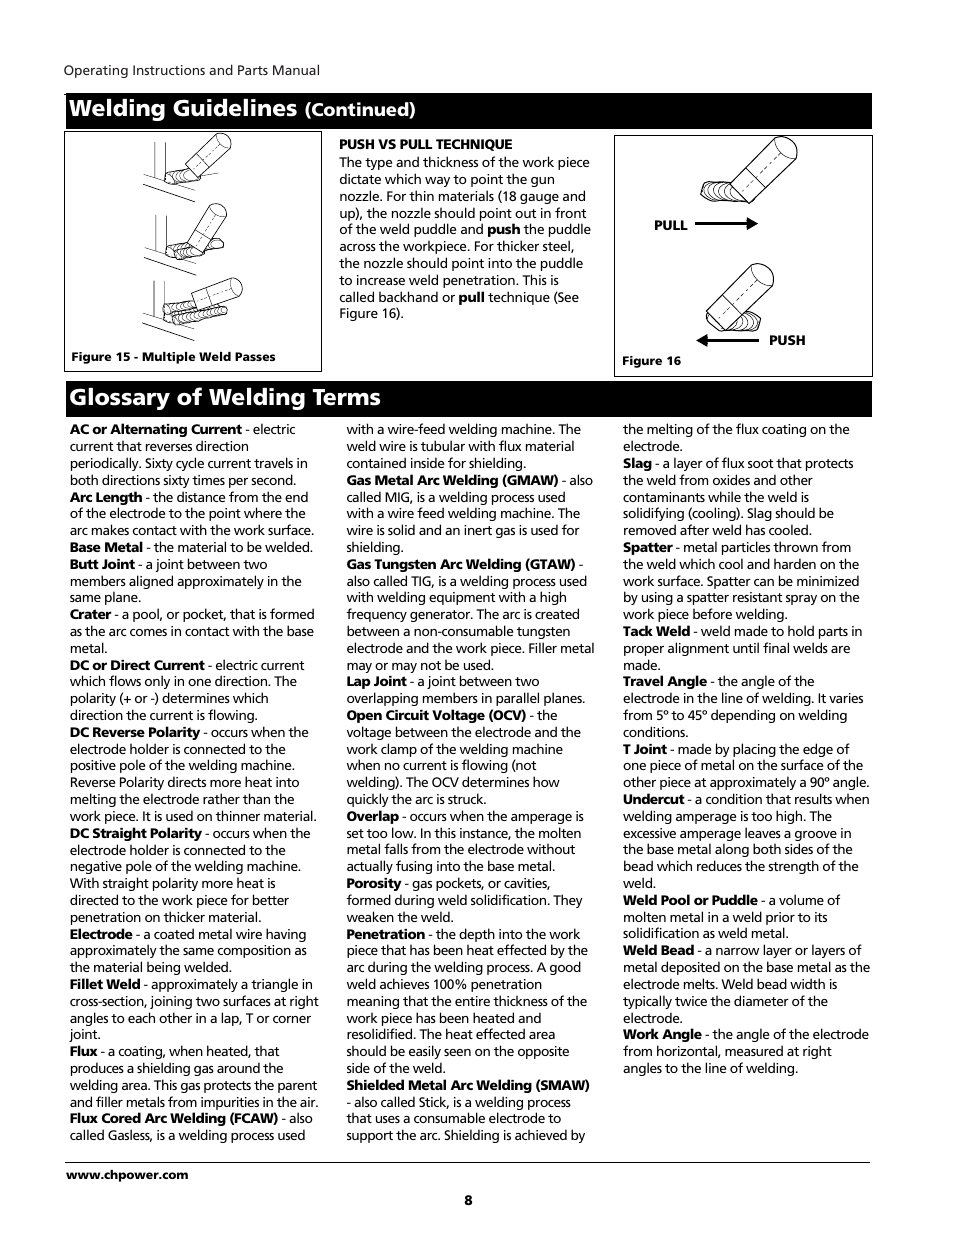 Perfect Mig Welding Wire Speed Chart Inspiration - The Wire - magnox ...